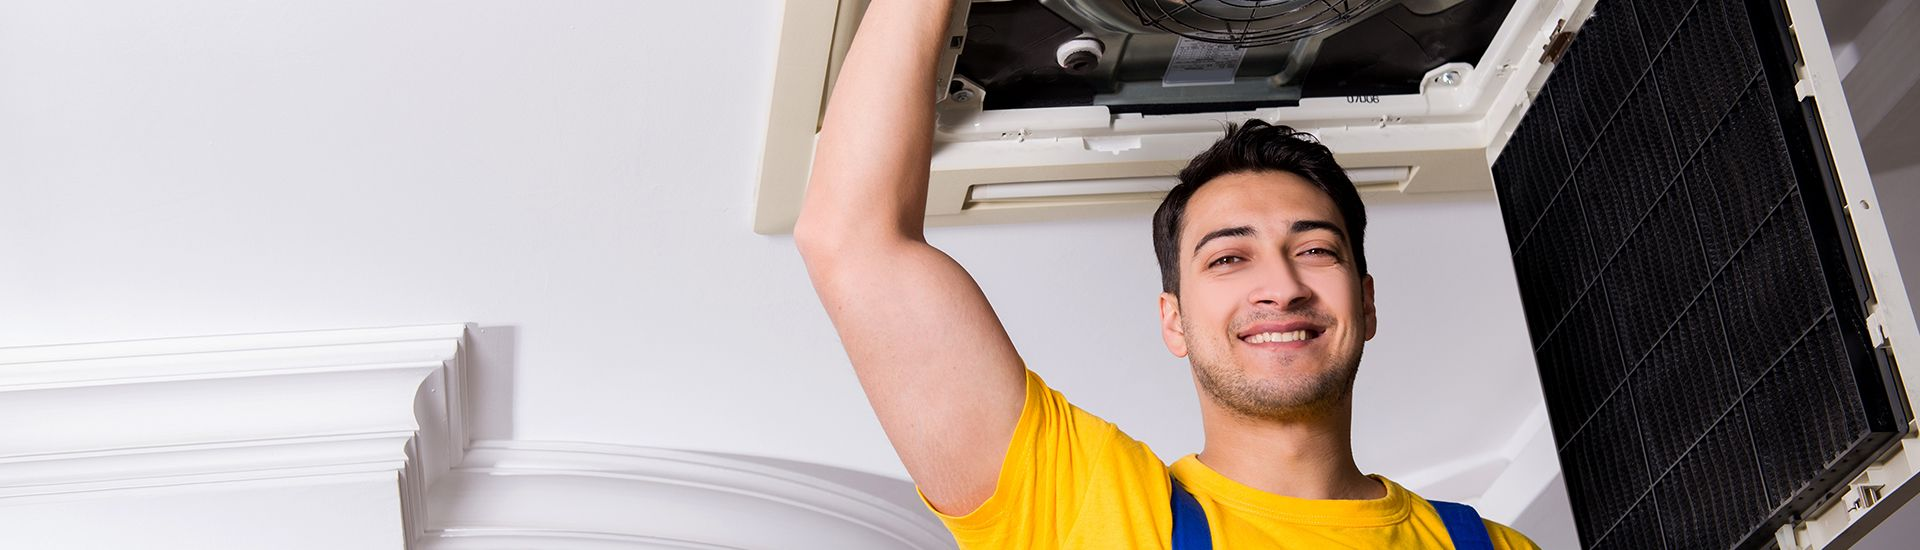 AC Repair in Boca Raton, Delray Beach, Plantation FL